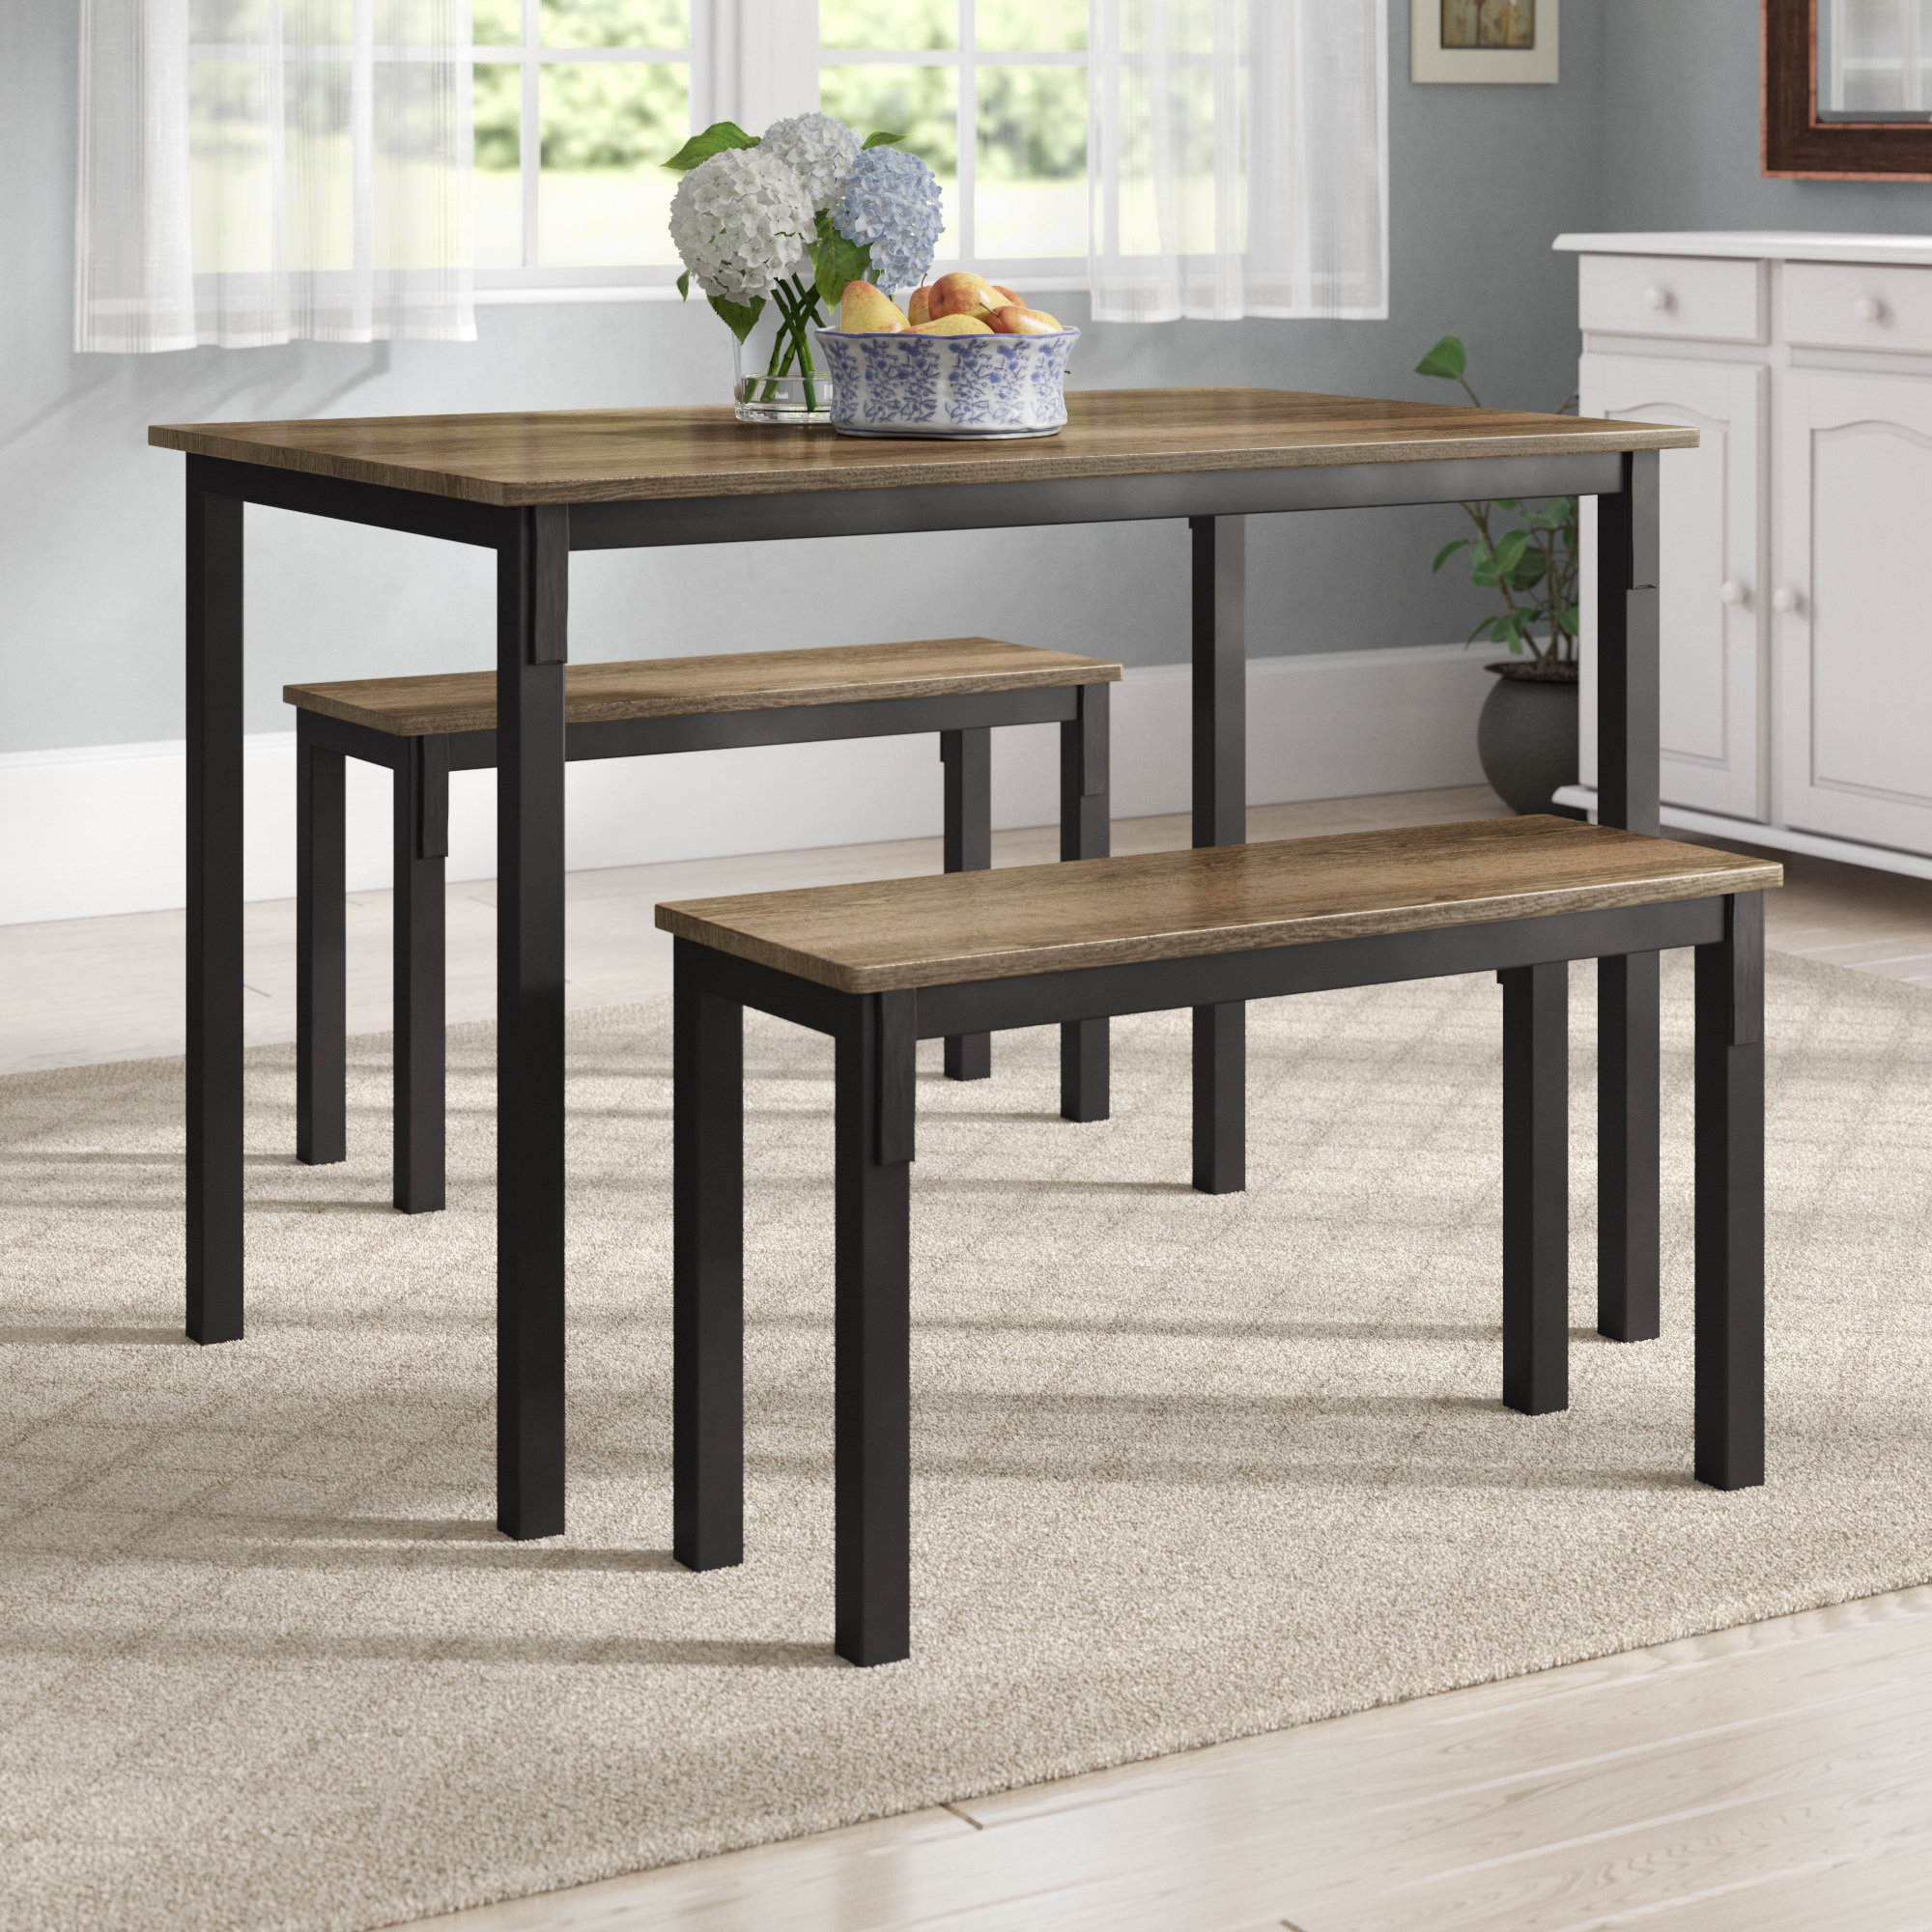 Rossiter 3 Piece Dining Set In 2017 3 Piece Dining Sets (View 2 of 20)